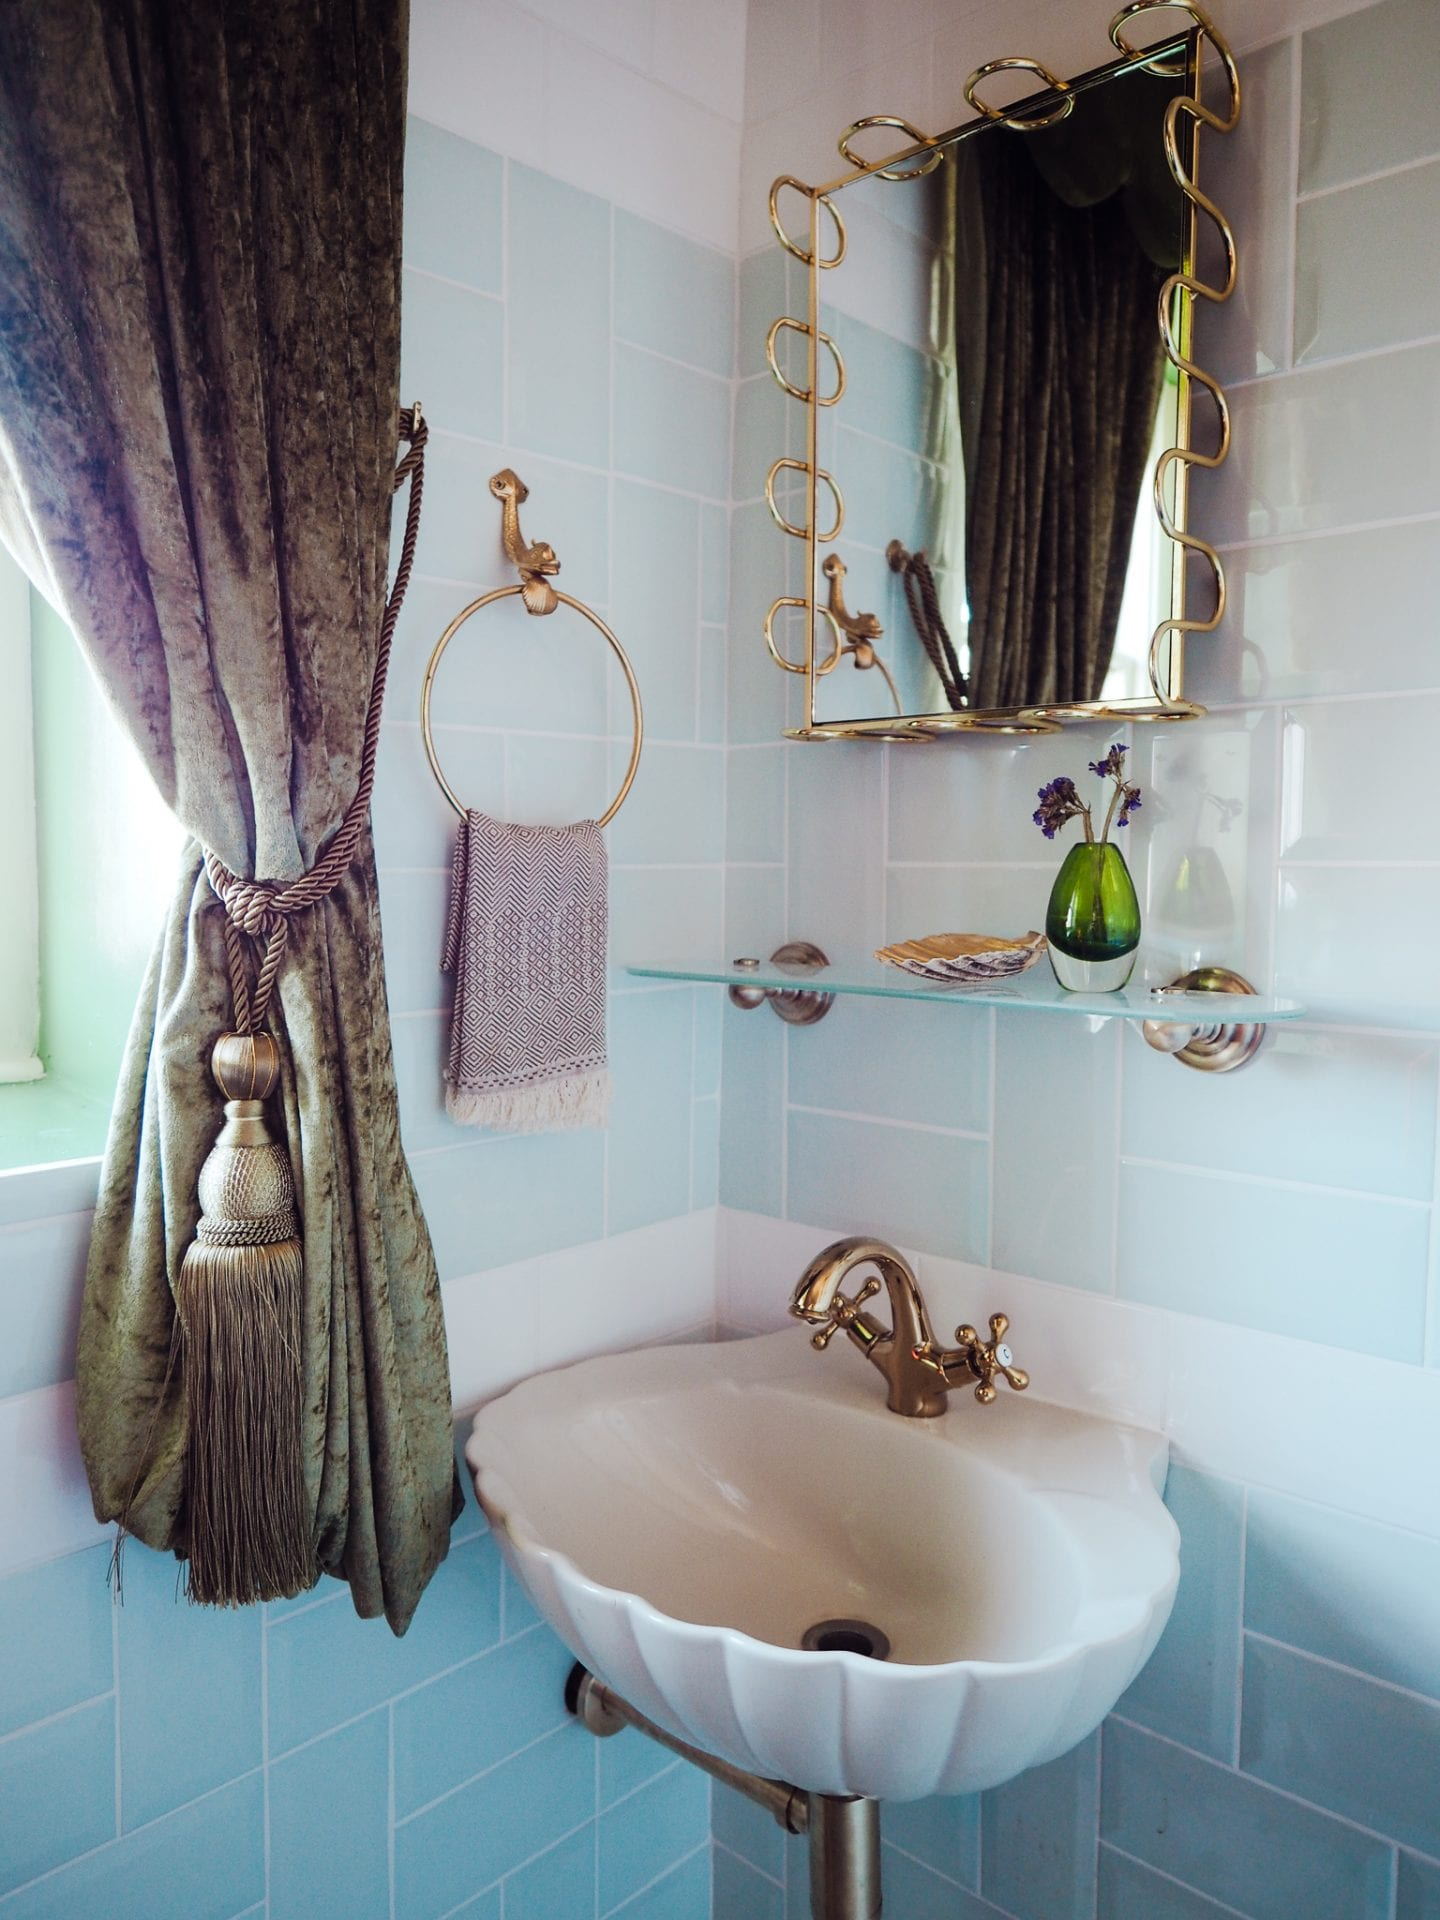 george-and-heart-margate-kent-seashell-sink-gold-taps-blue-tiles